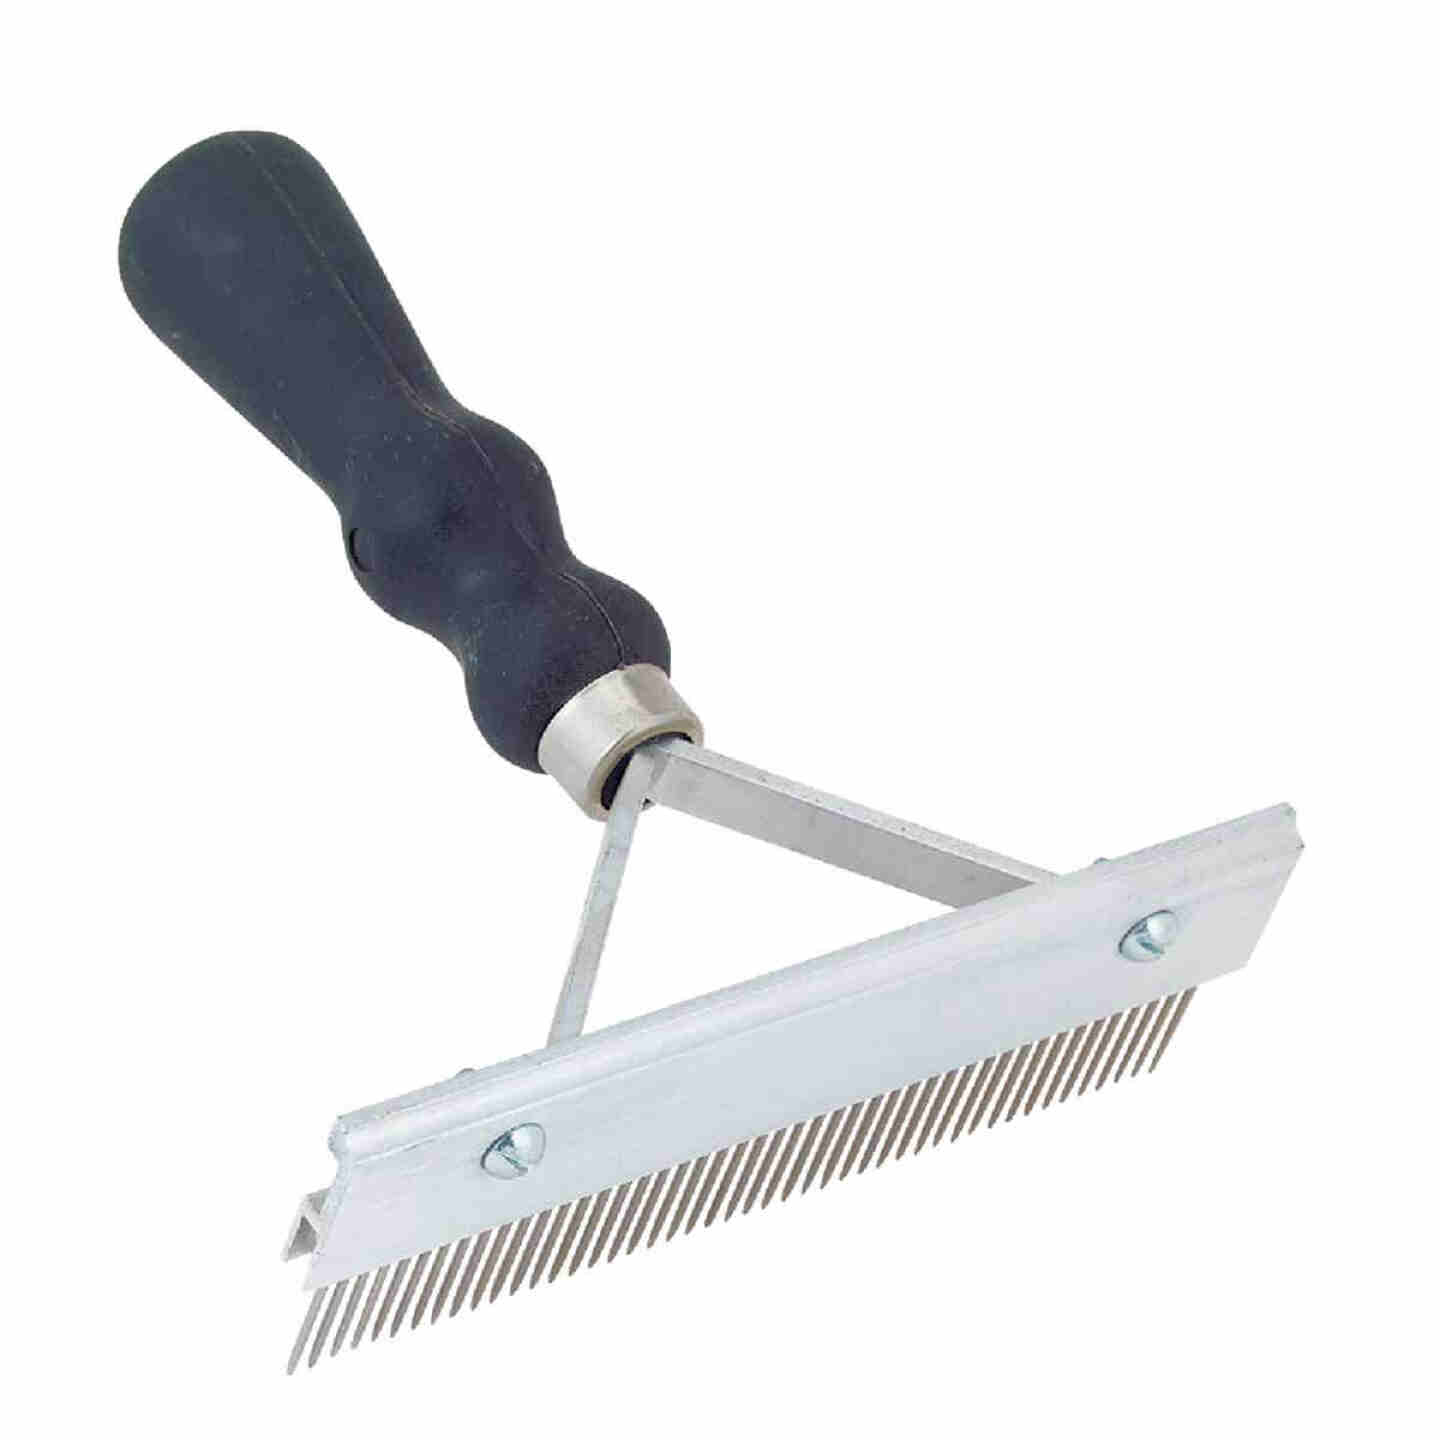 Decker 6 In. Curling Comb Image 1